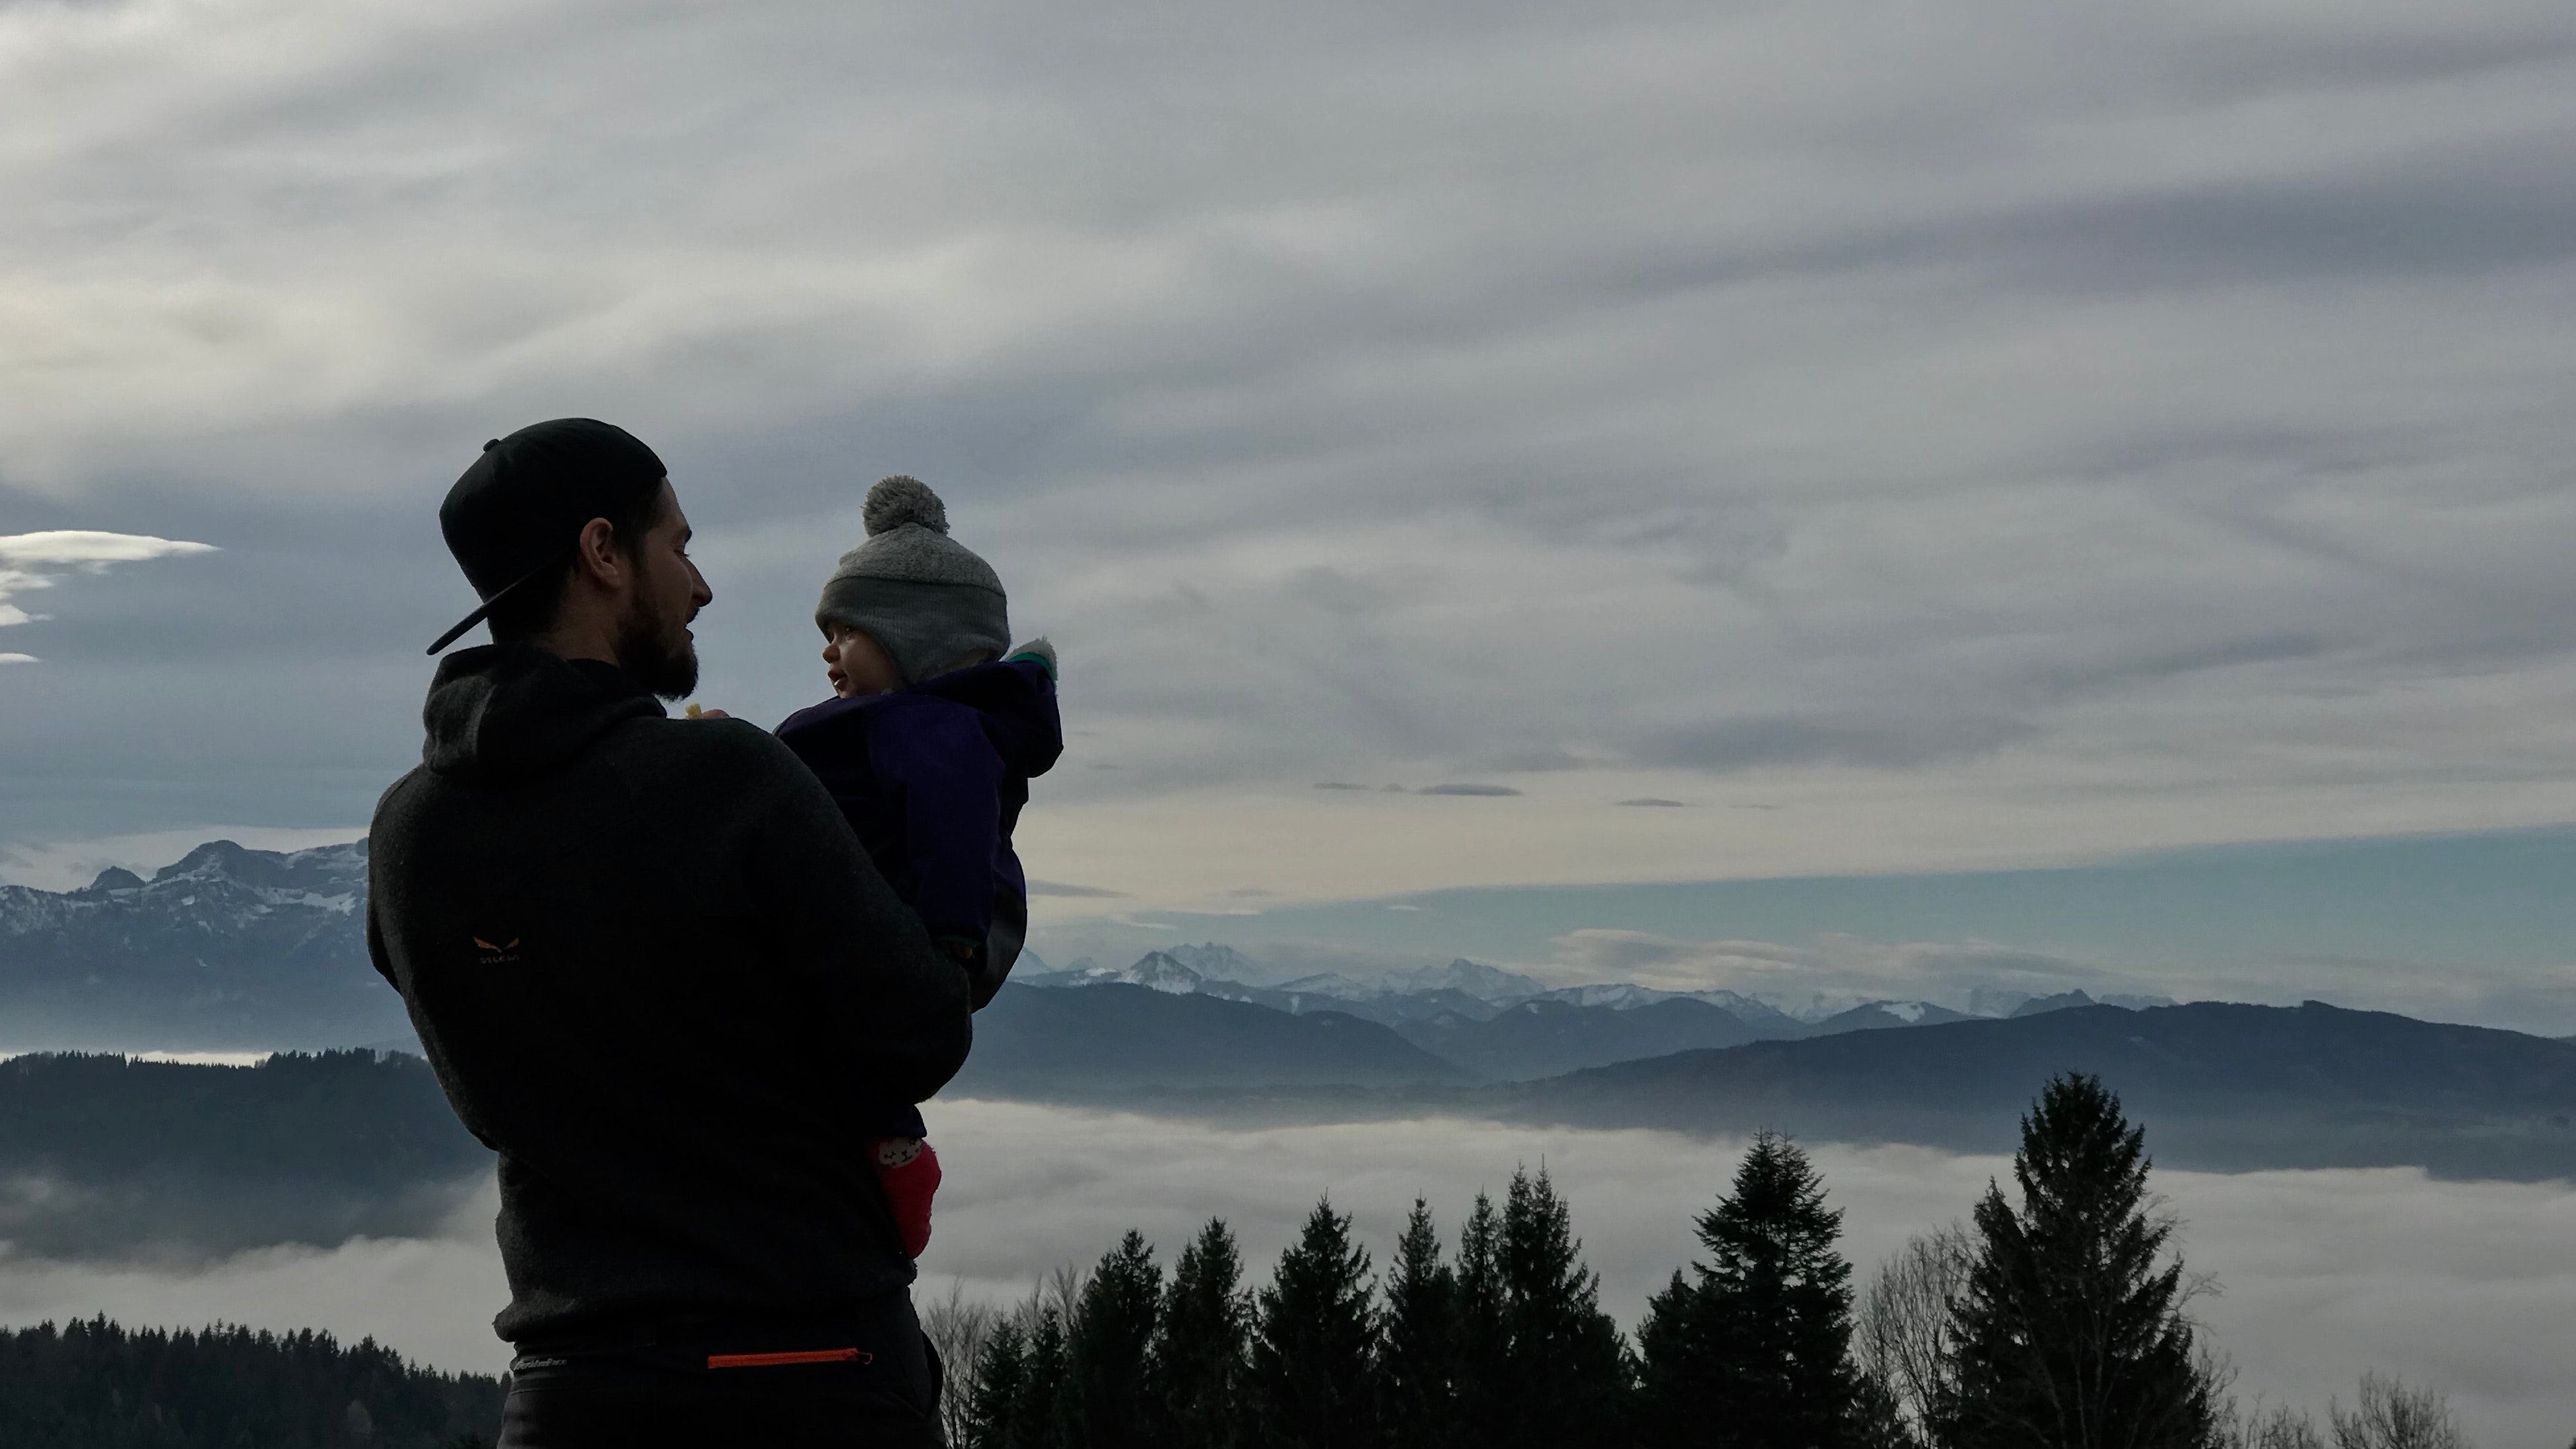 Man Holding a Baby Photo, Mountain peak, Trees, Snow, Sky, HQ Photo